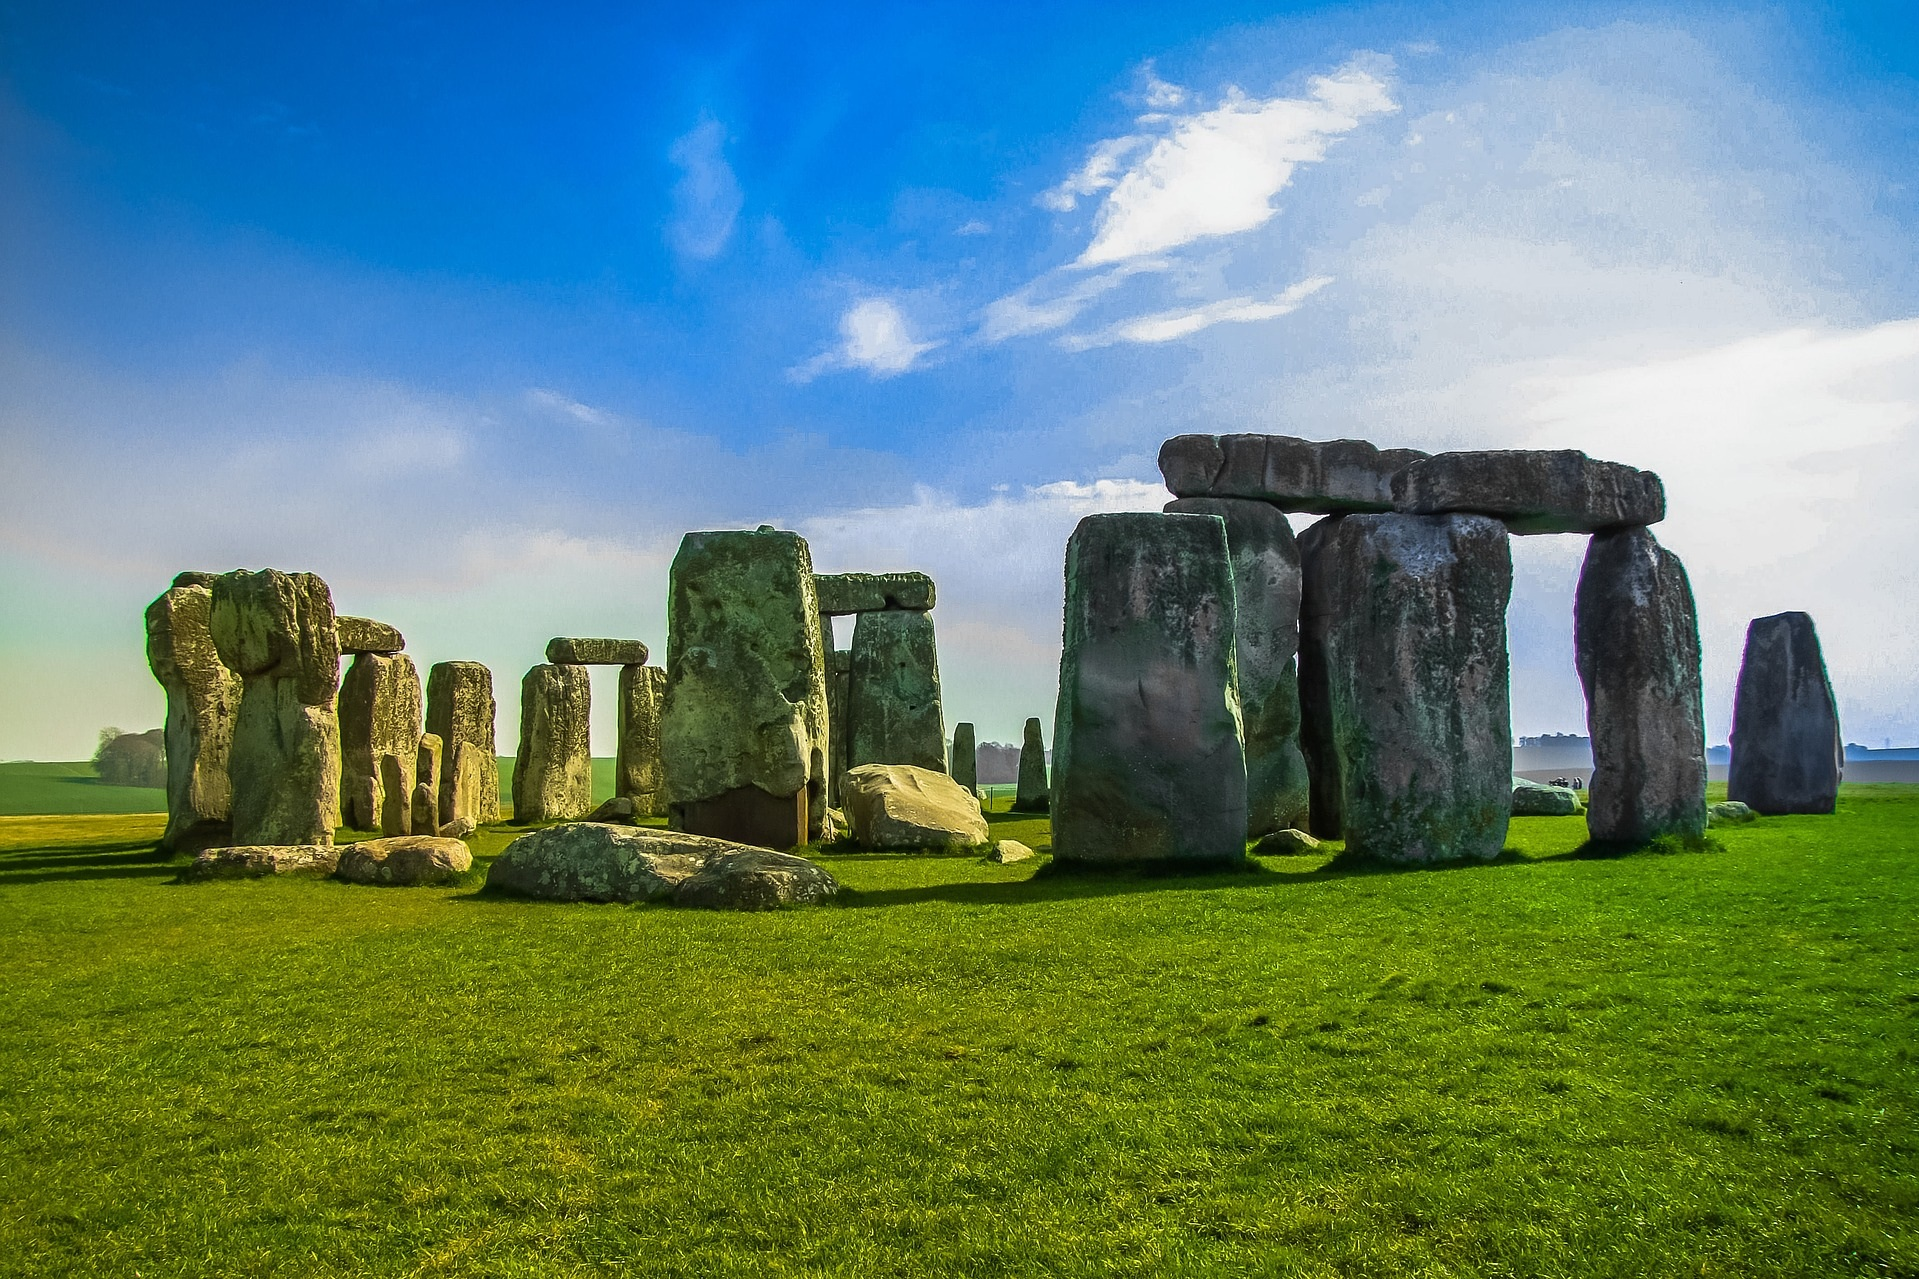 Bath And Stonehenge Tour - Visit two top UK attractions in a day with a tour to Stonehenge and Bath - departing from London